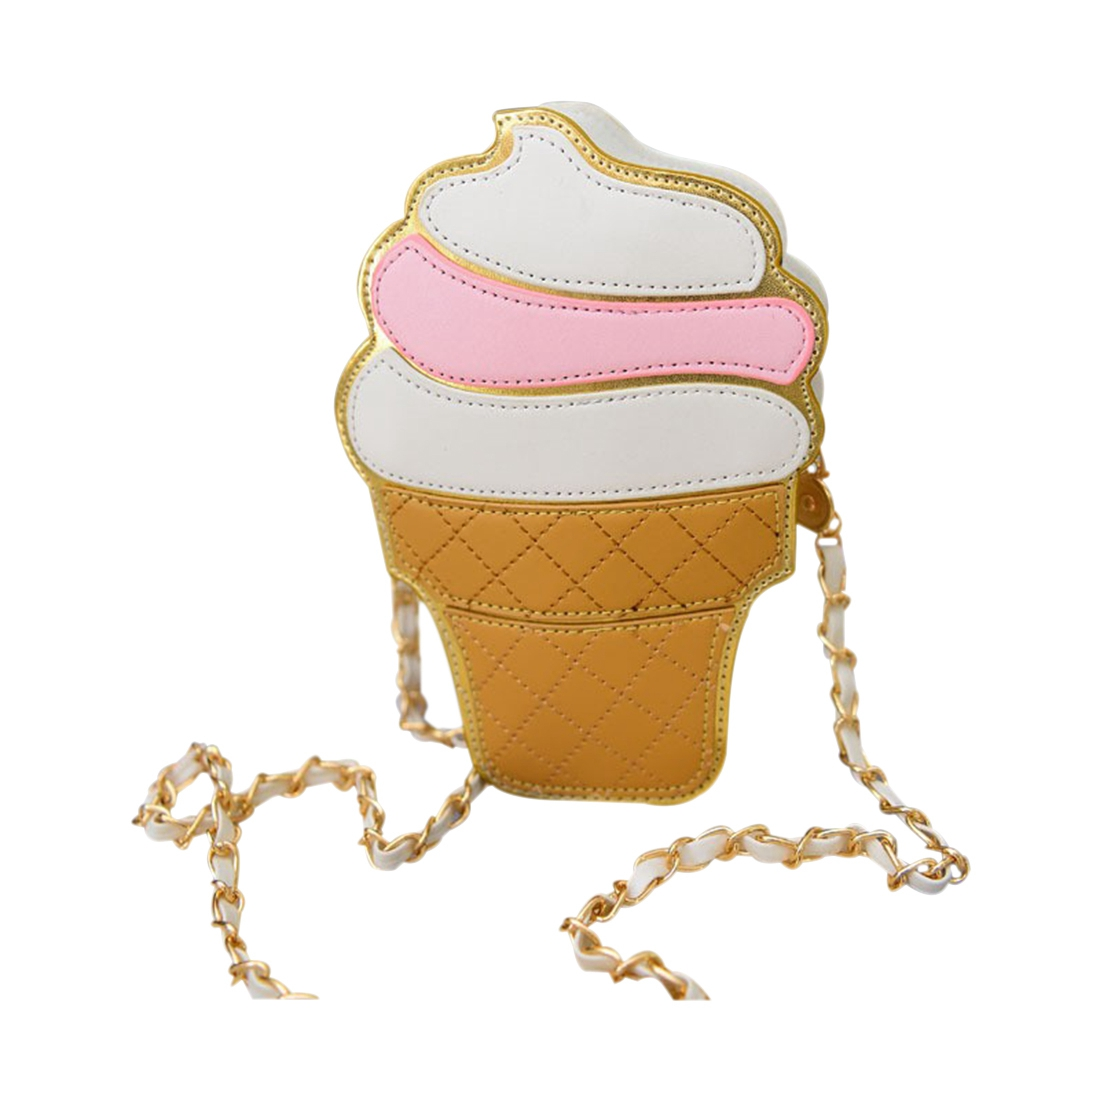 ABDB New Cute Cartoon Women Ice cream Cupcake Mini Bags PU Leather Small Chain Clutch Crossbody Girl Shoulder Messenger bag цена